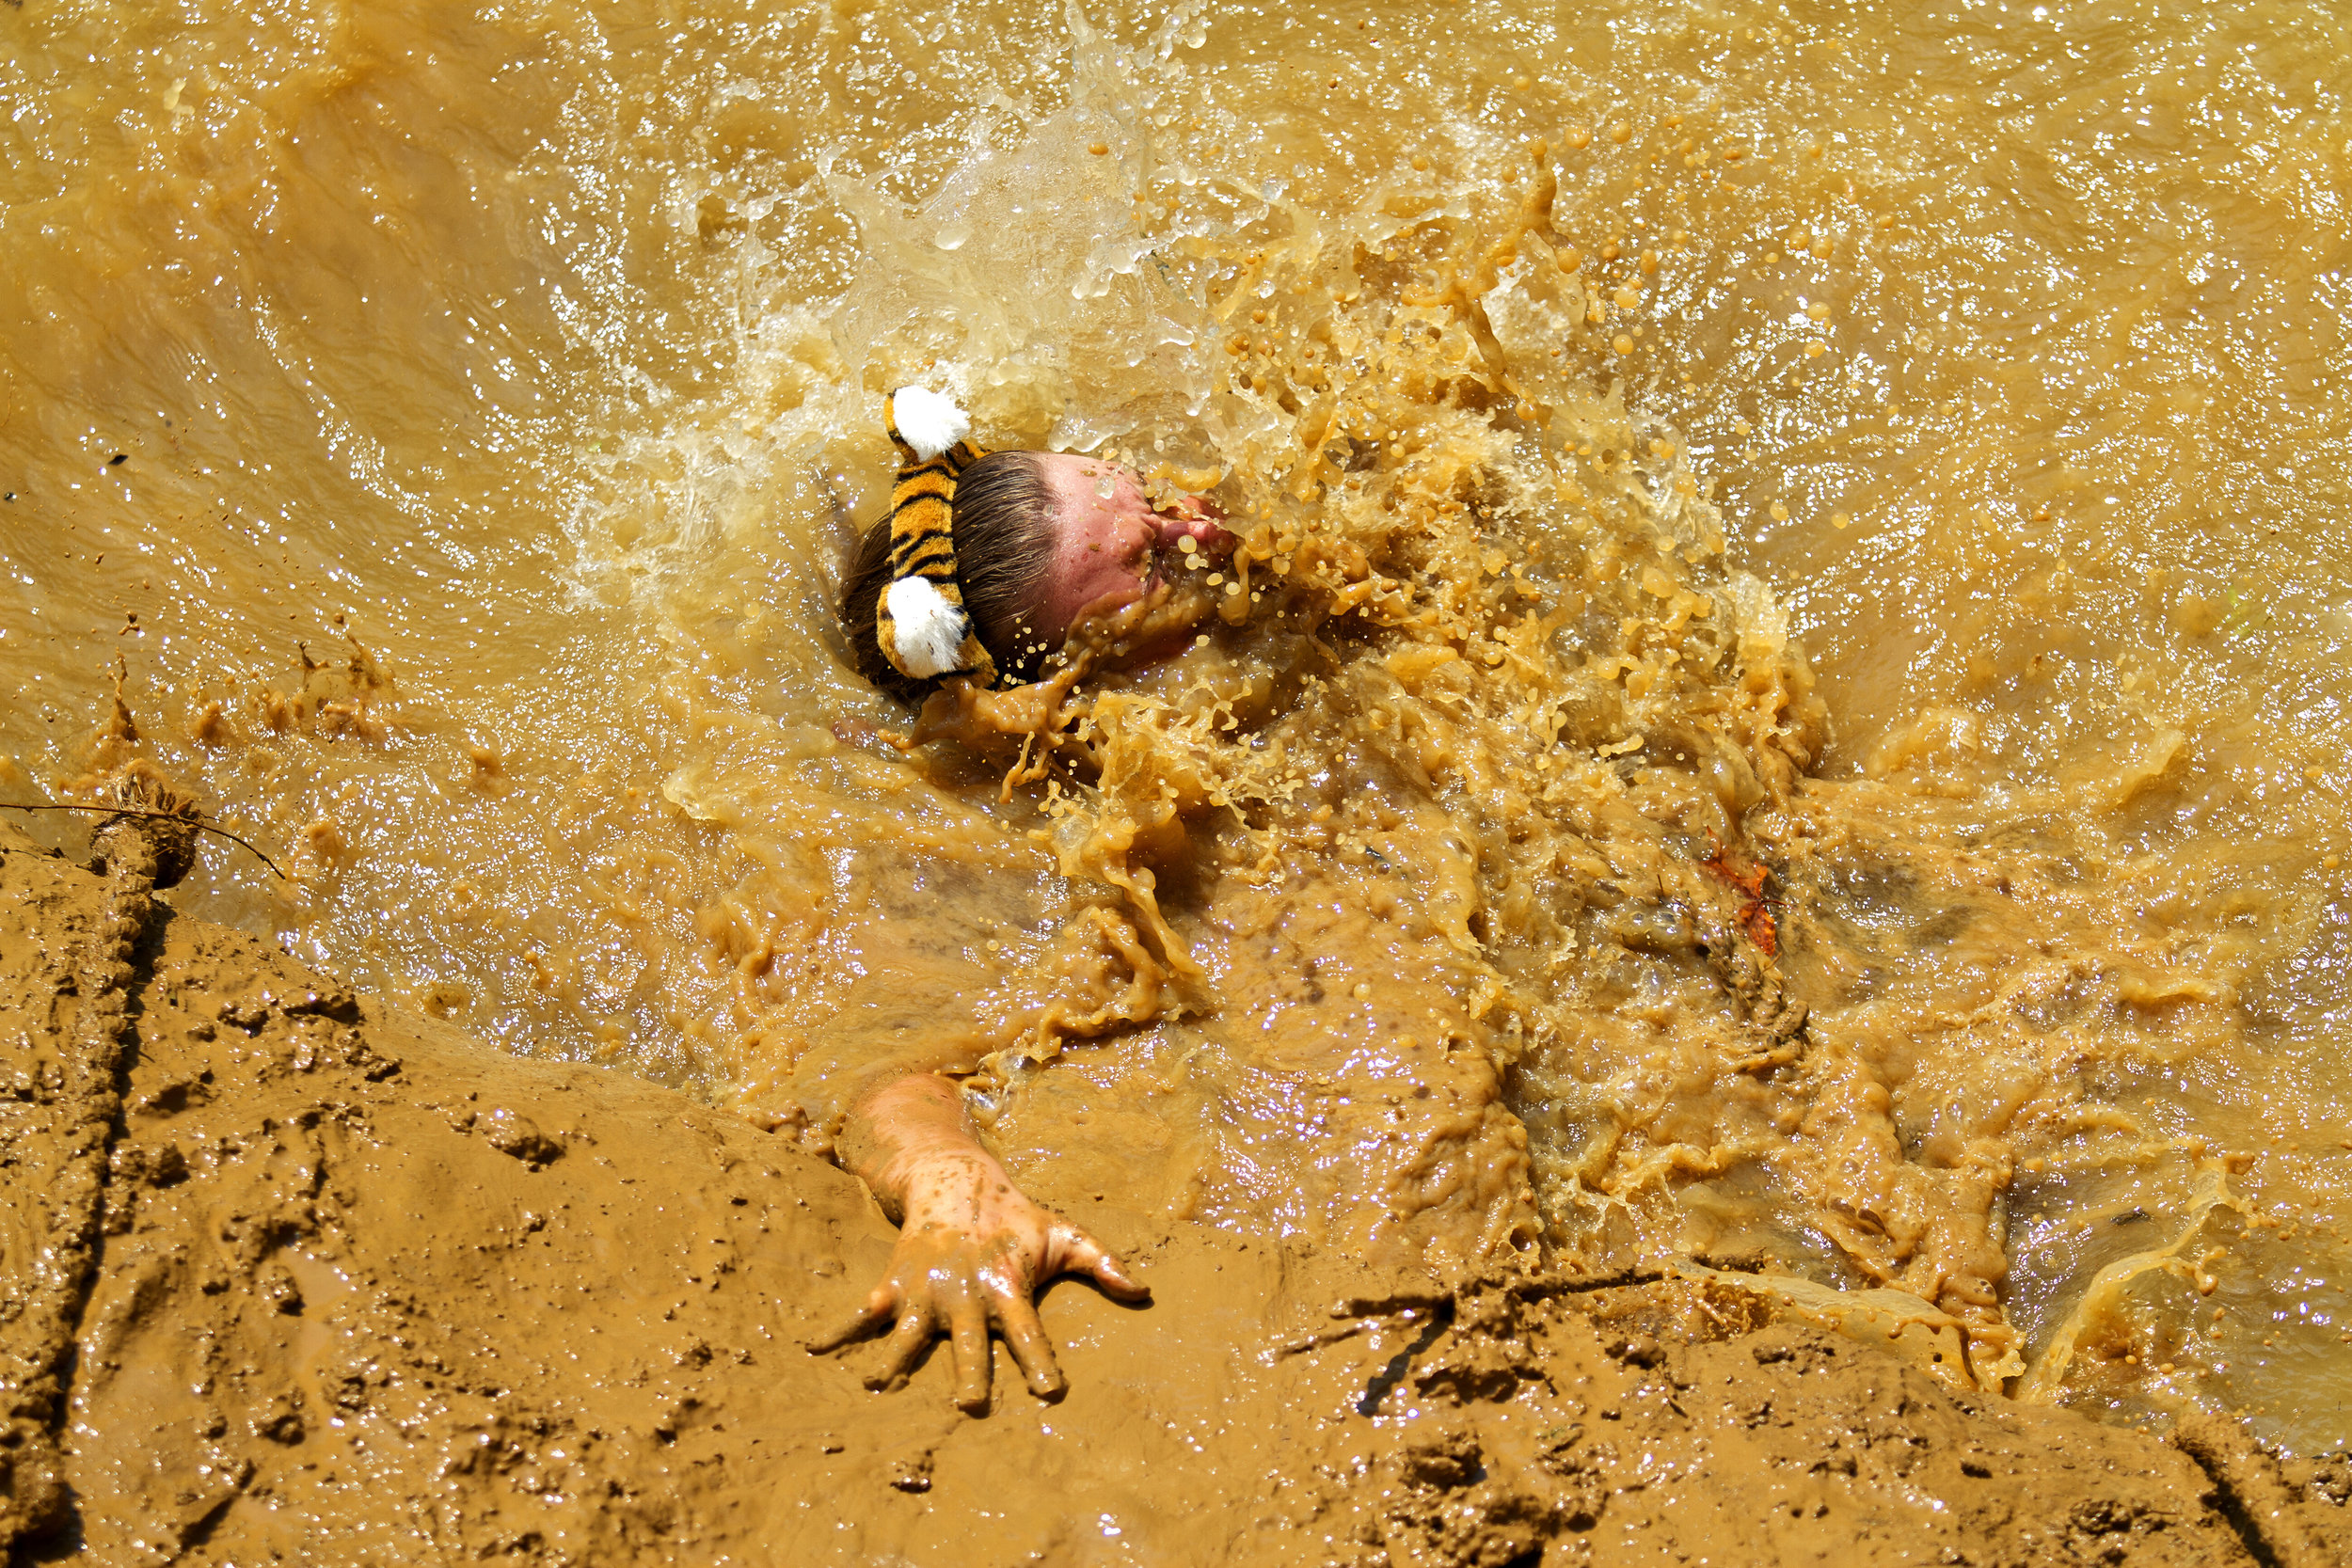 A team member from the All Cats and Dogs Team slips and falls from the top of the muddy wall and lands in the muddy water below during the Bowling Green Mud Gauntlet at Phil Moore Park. The gauntlet was presented by the Family Enrichment Center in their efforts to prevent child abuse.